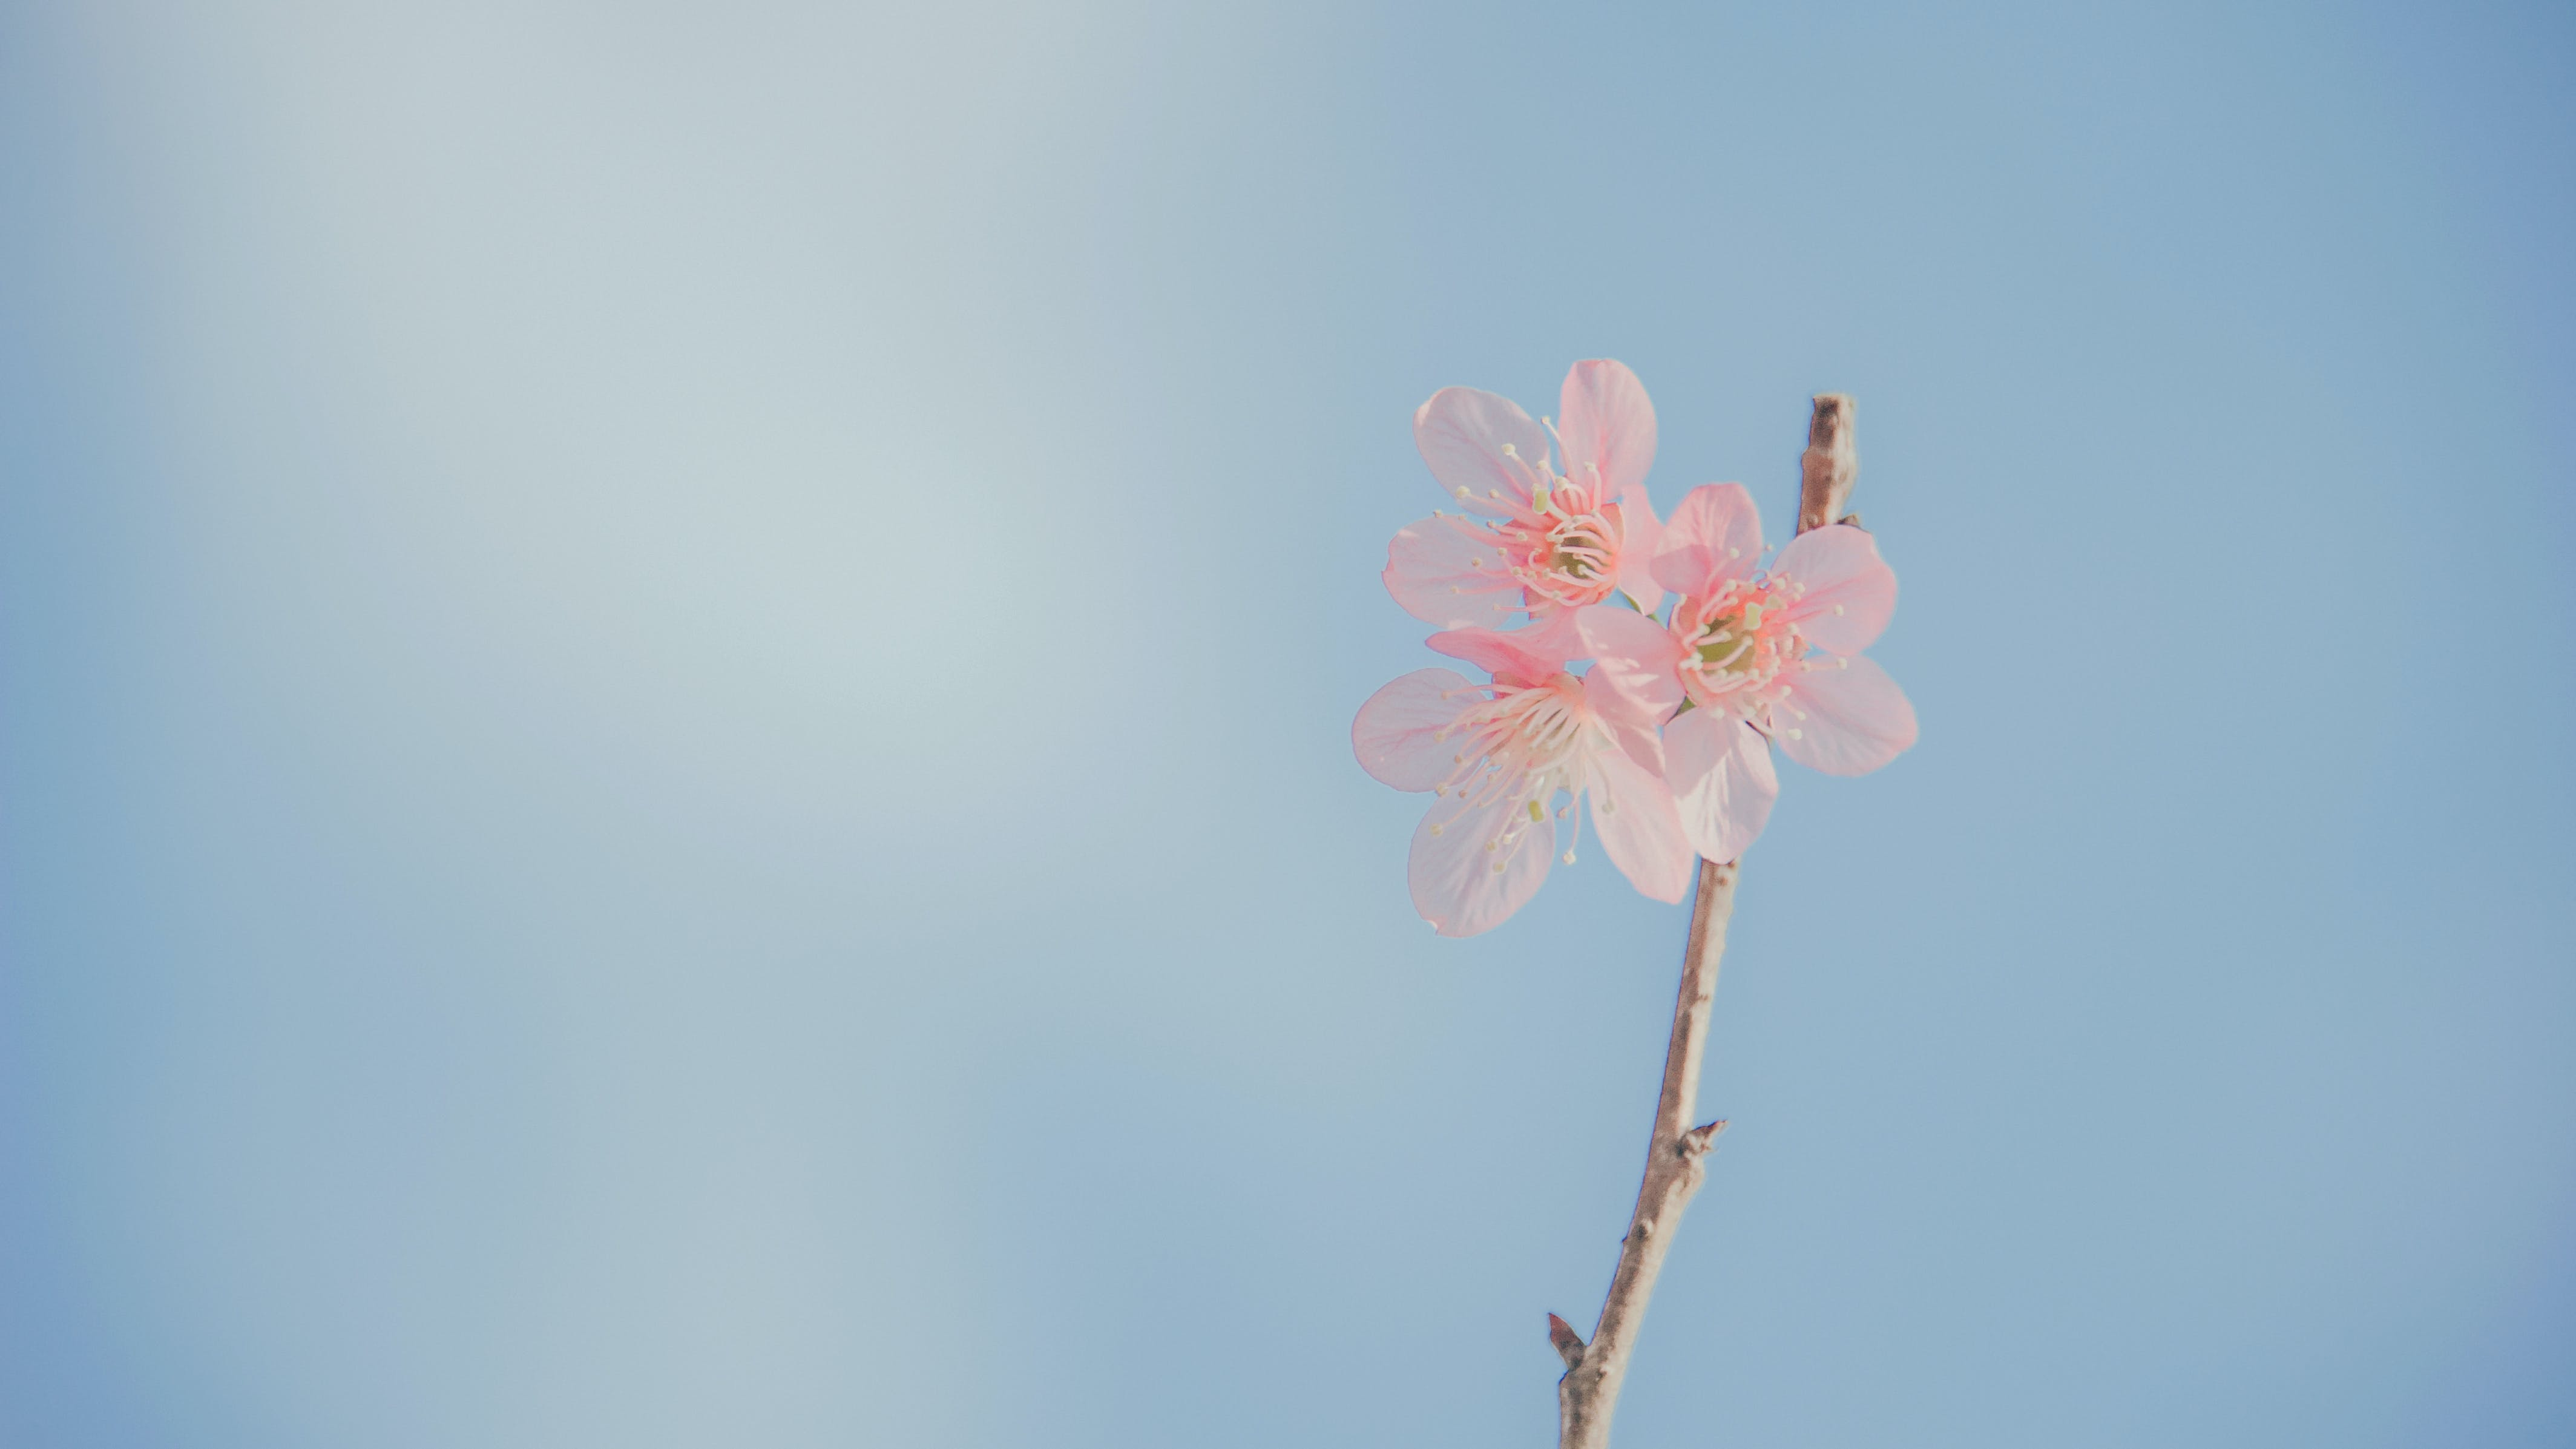 Landscape Photography of Pink Petaled Flowers